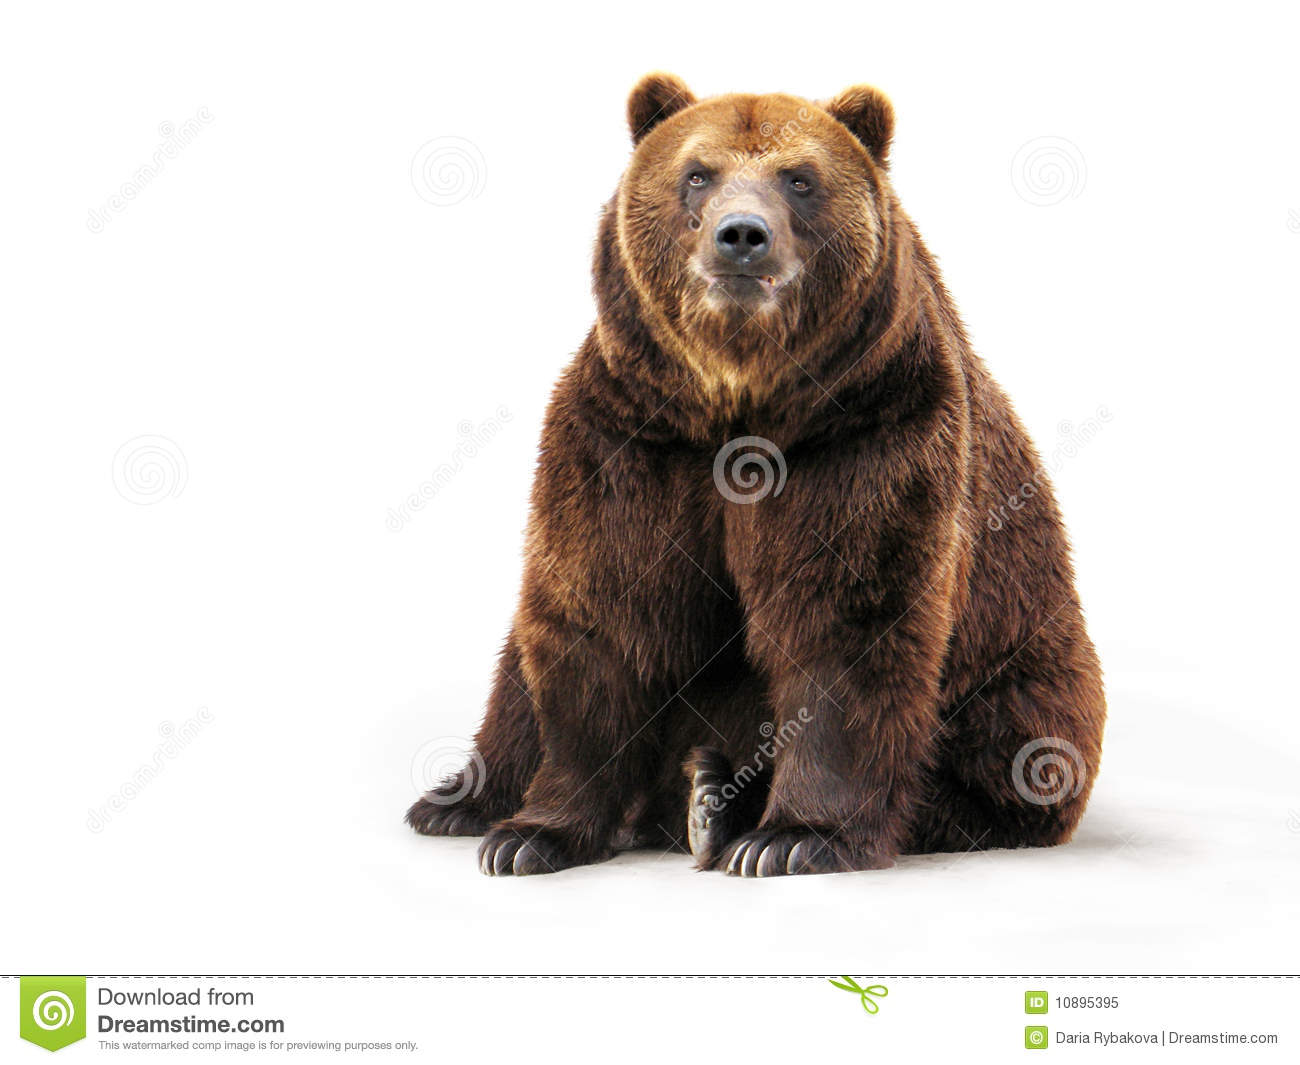 Bear on white